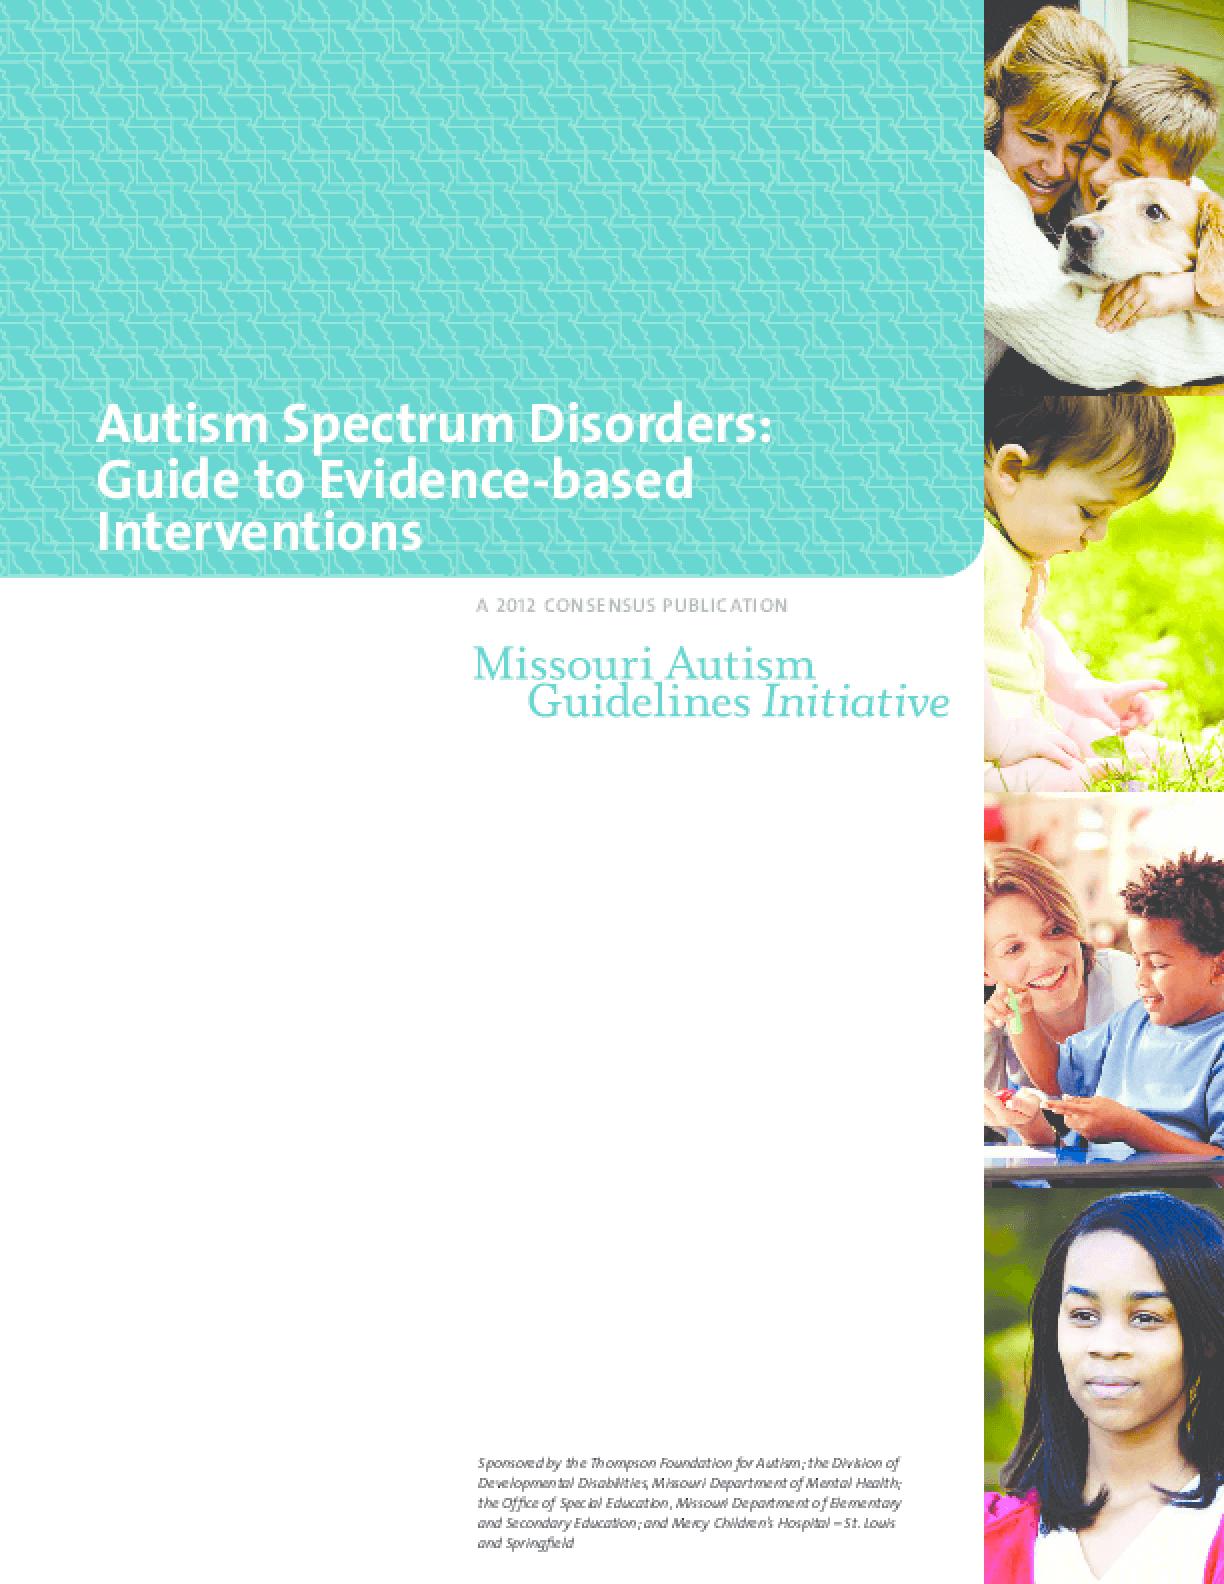 Autism Spectrum Disorders: Guide to Evidence-Based Interventions